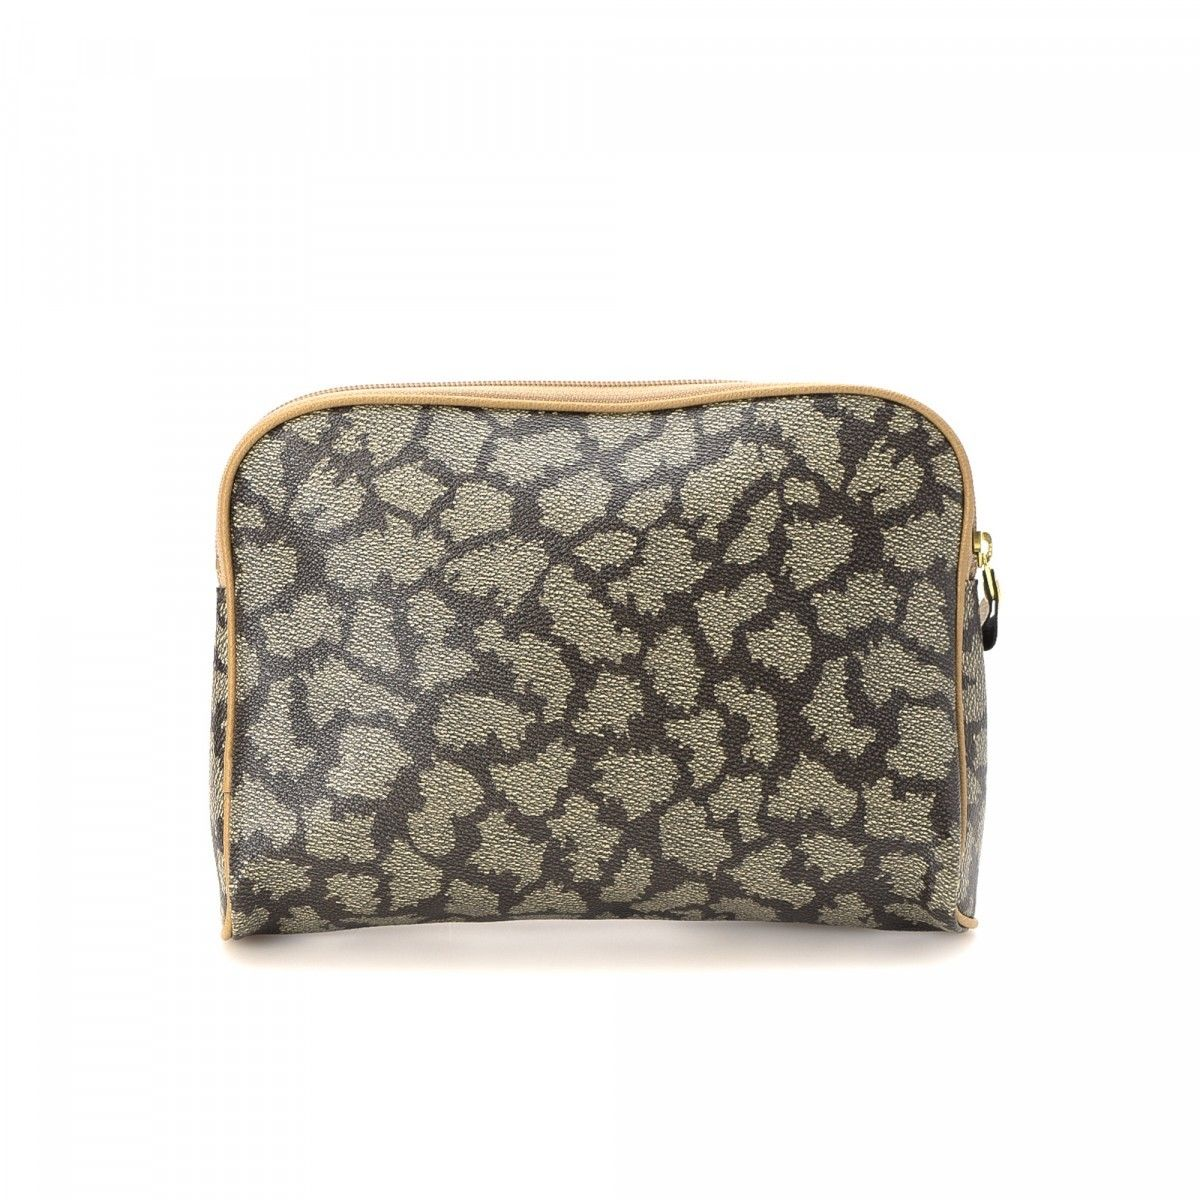 199169f76e7 Yves Saint Laurent Clutch Coated Canvas - LXRandCo - Pre-Owned ...